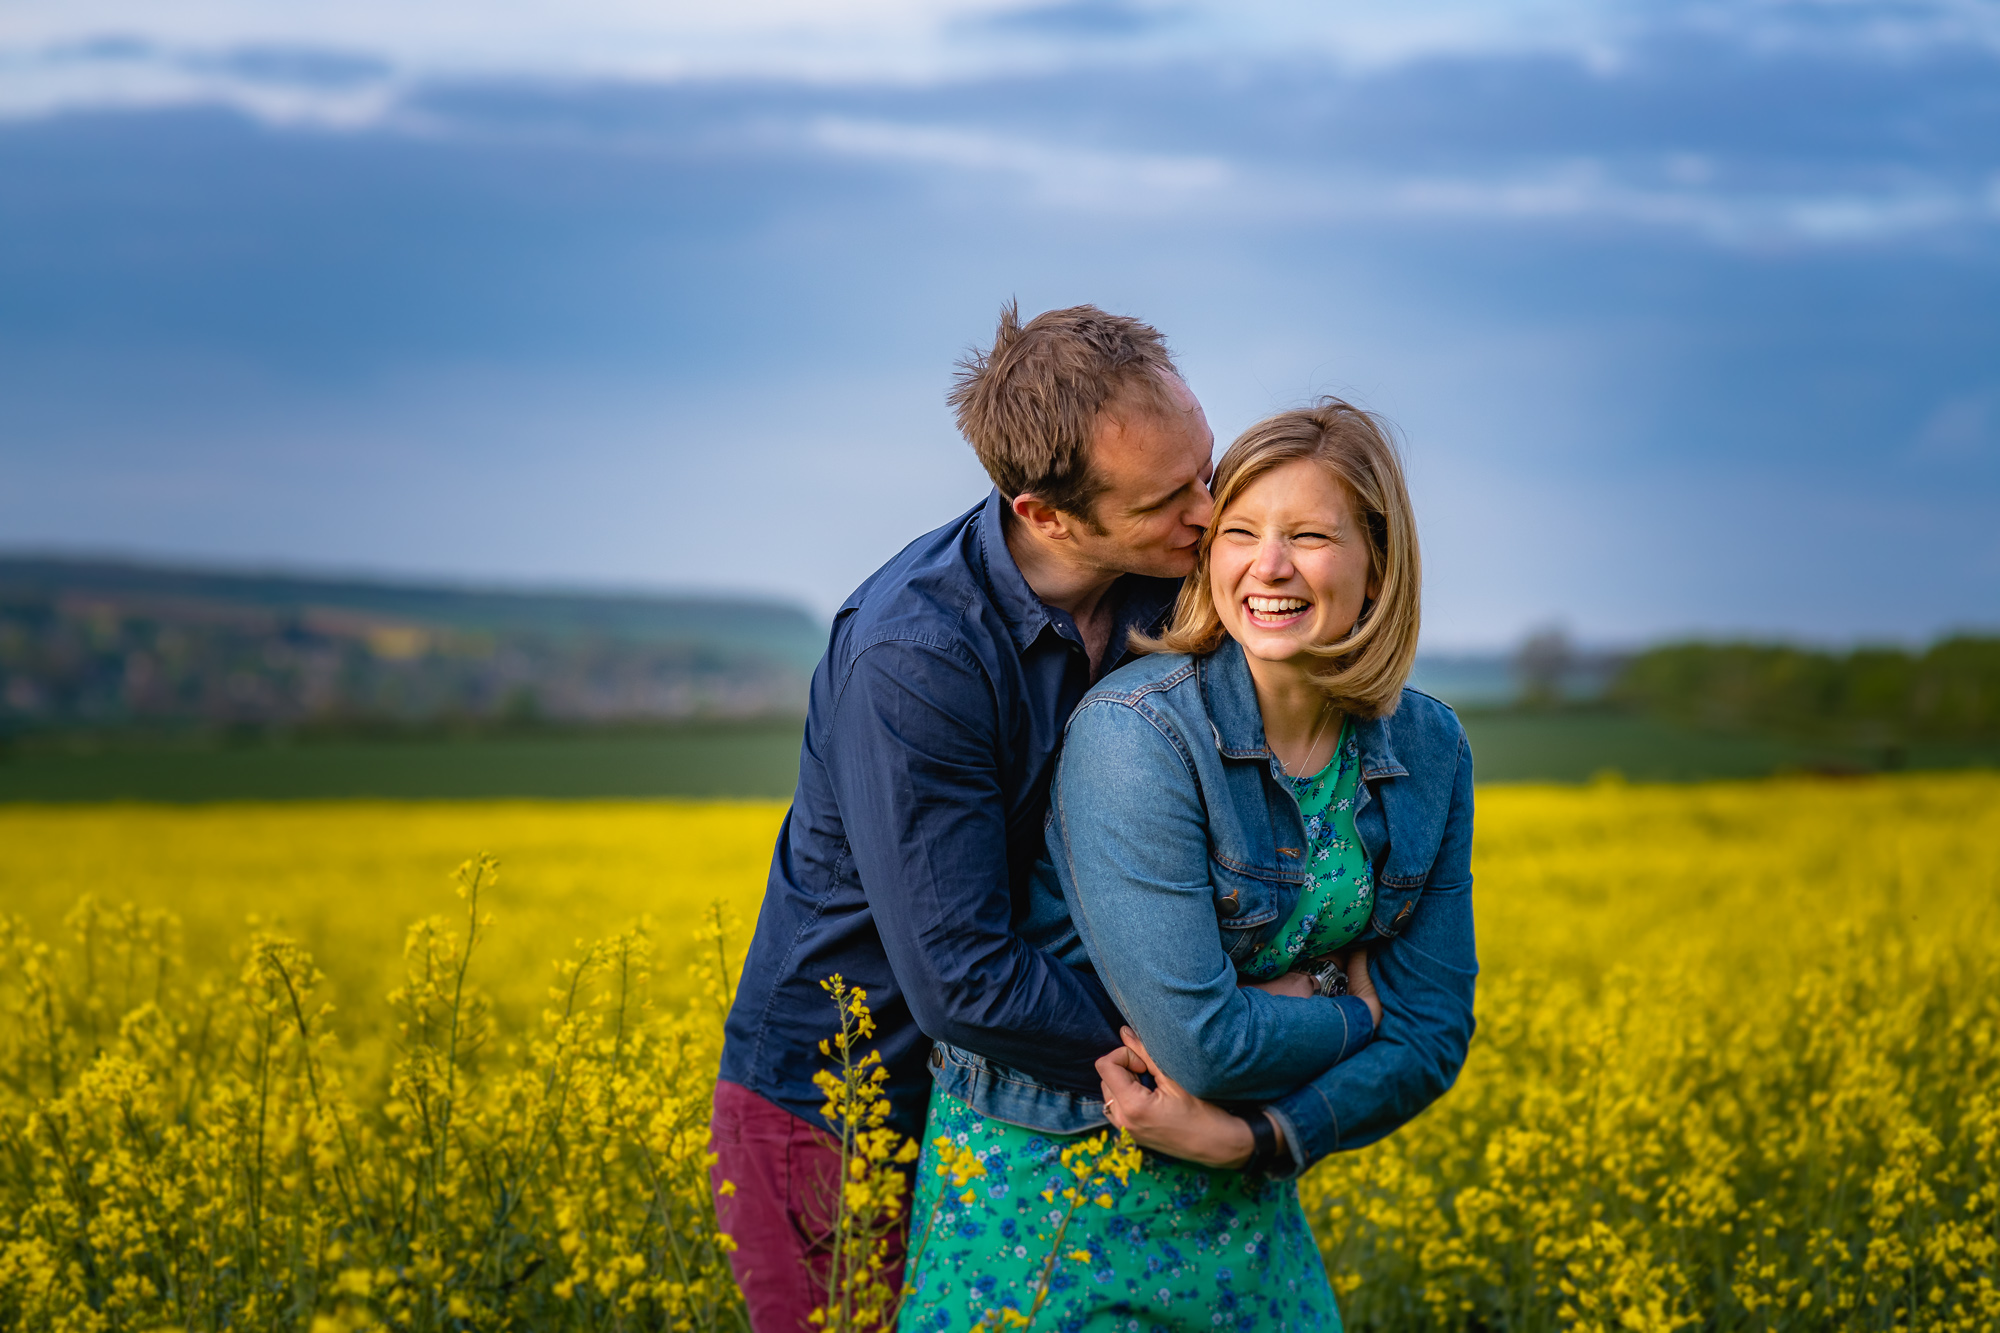 Rutland engagement shoot – Victoria & Aled